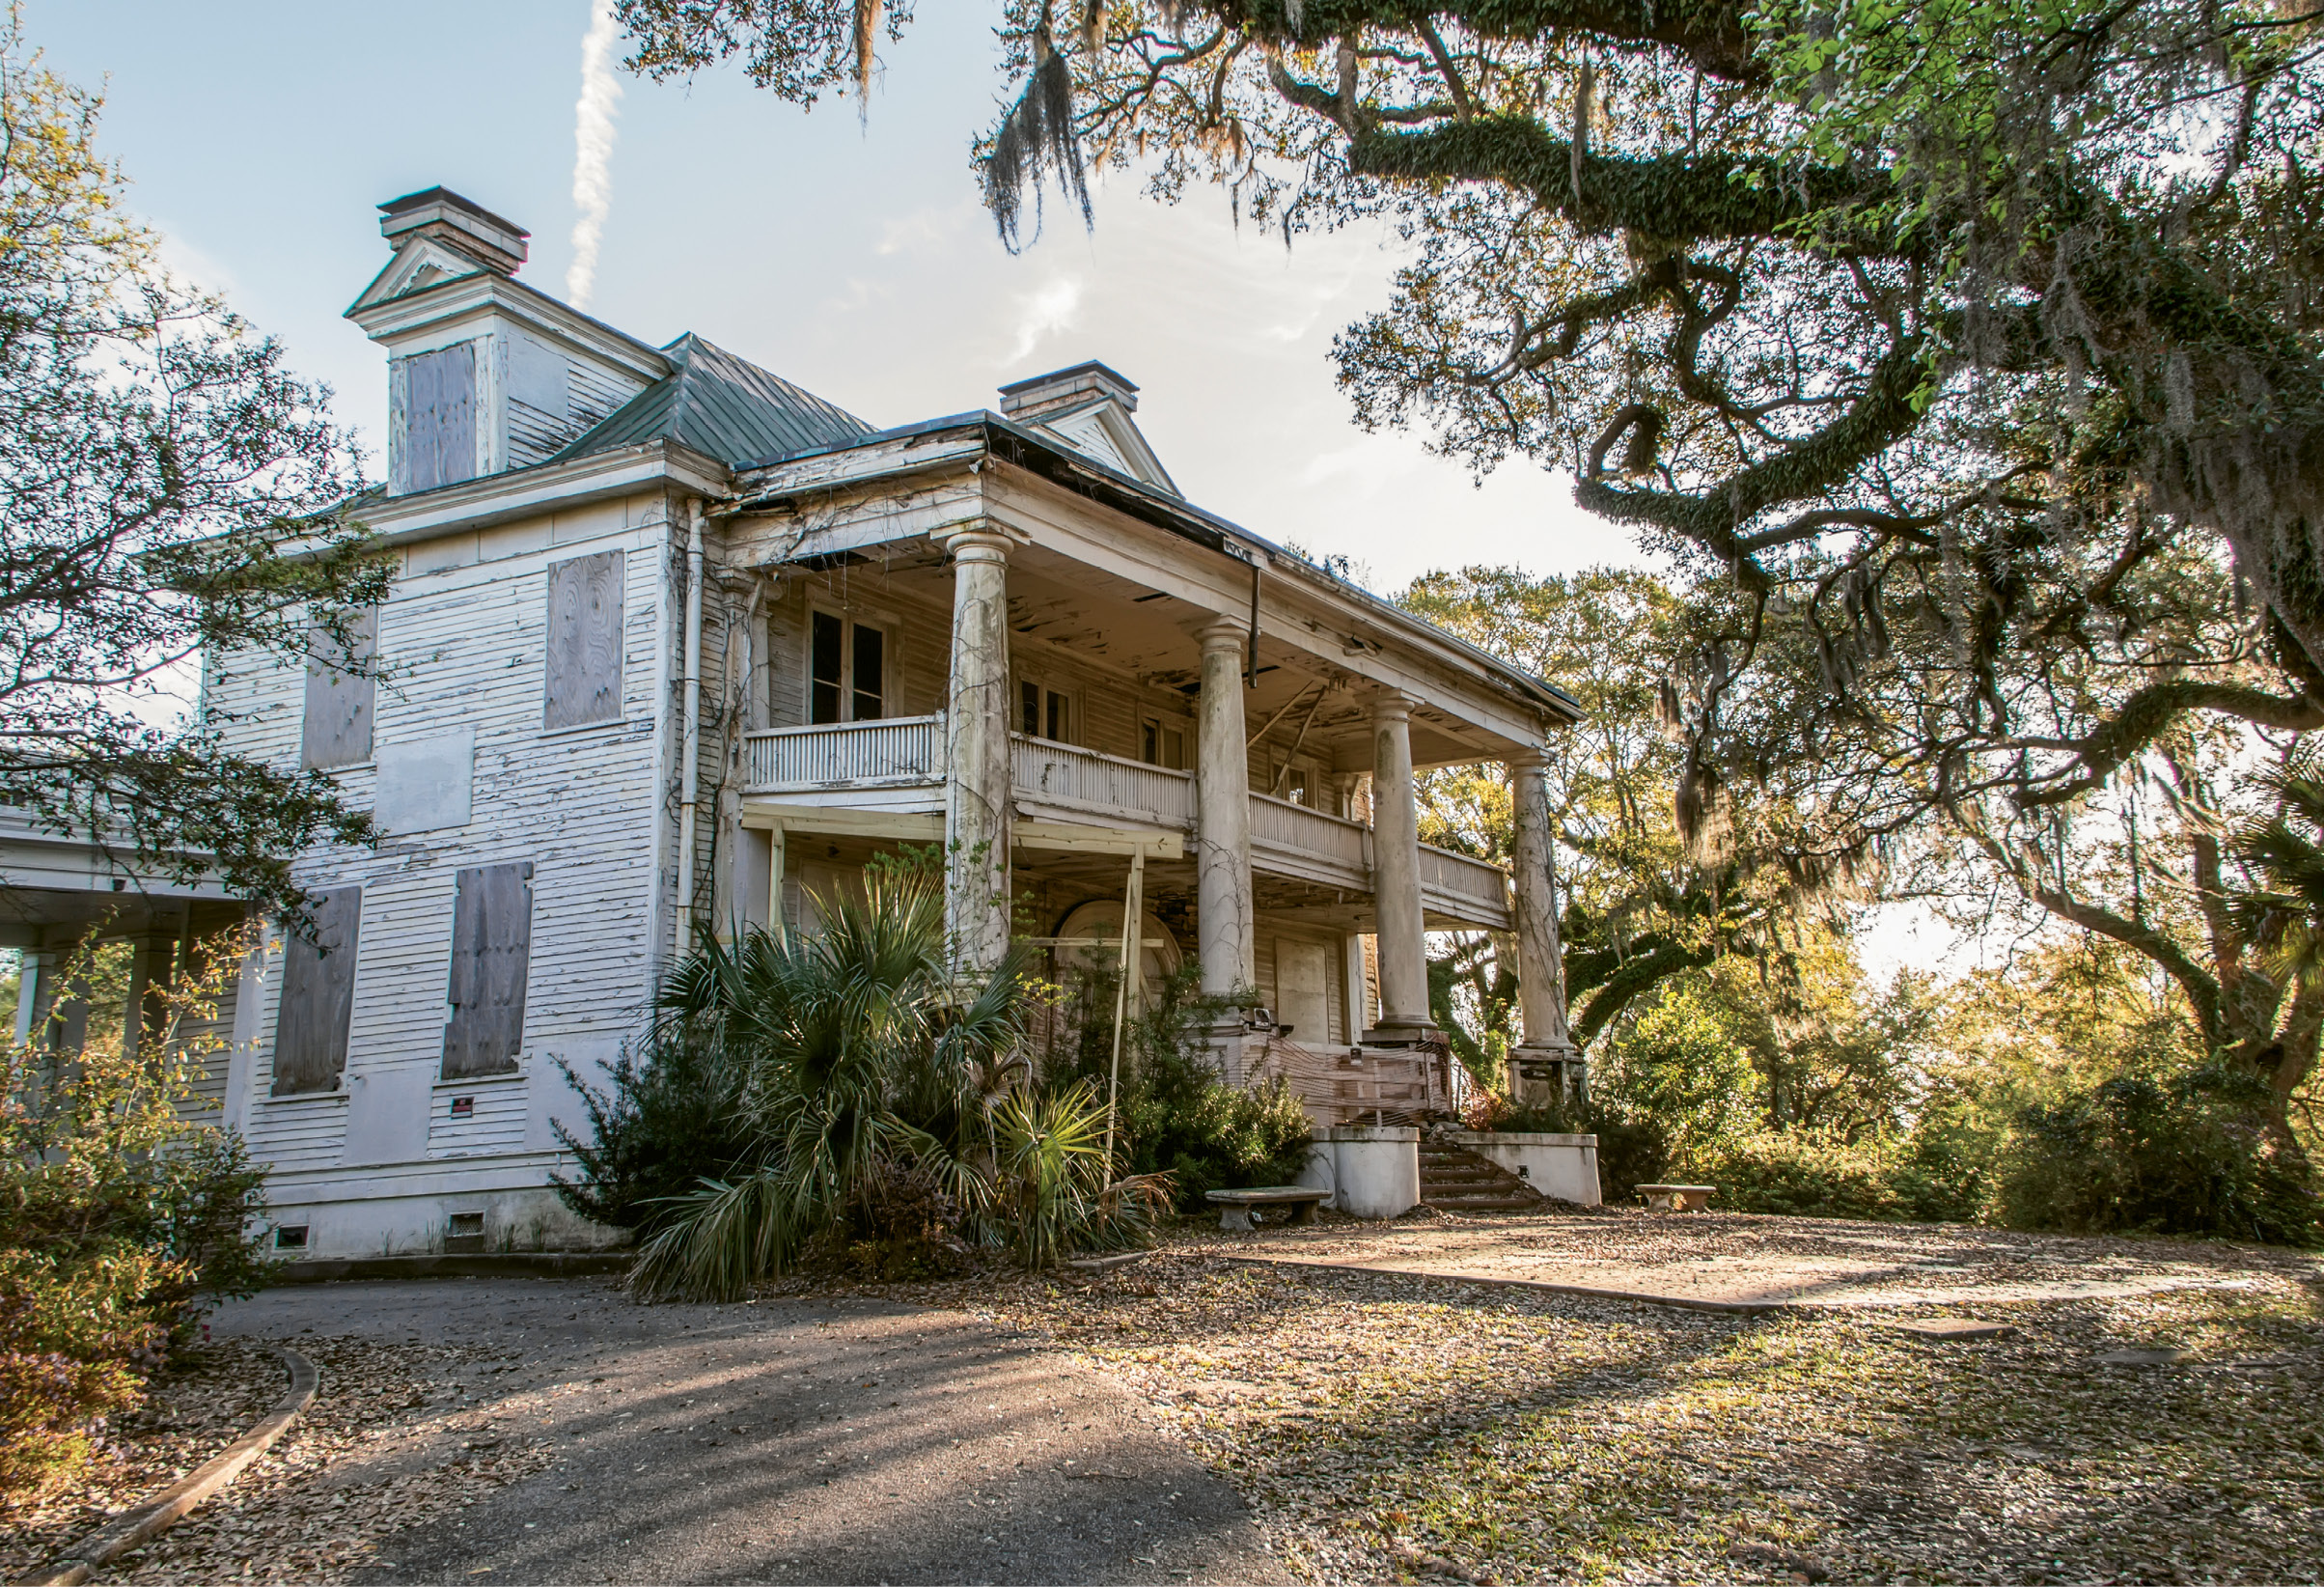 Silent Decay by Brandon Coffey  {Amateur category}  - The circa-1905 Admiral's House on the Old Naval Base in March 2016